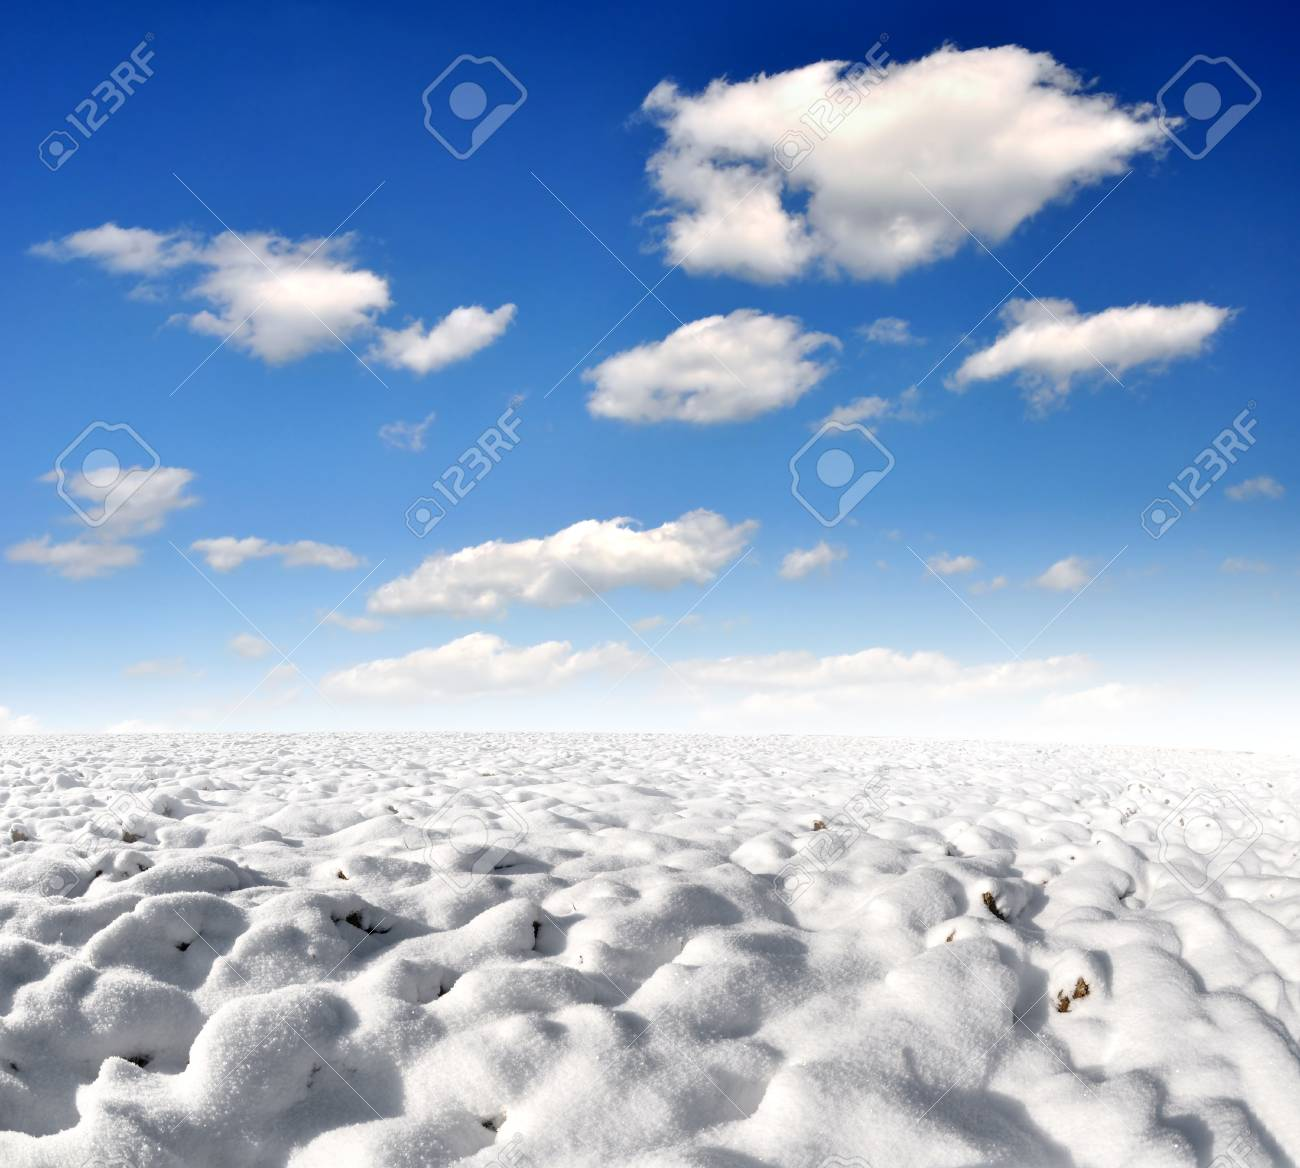 Snowy winter landscapes Stock Photo - 8493959